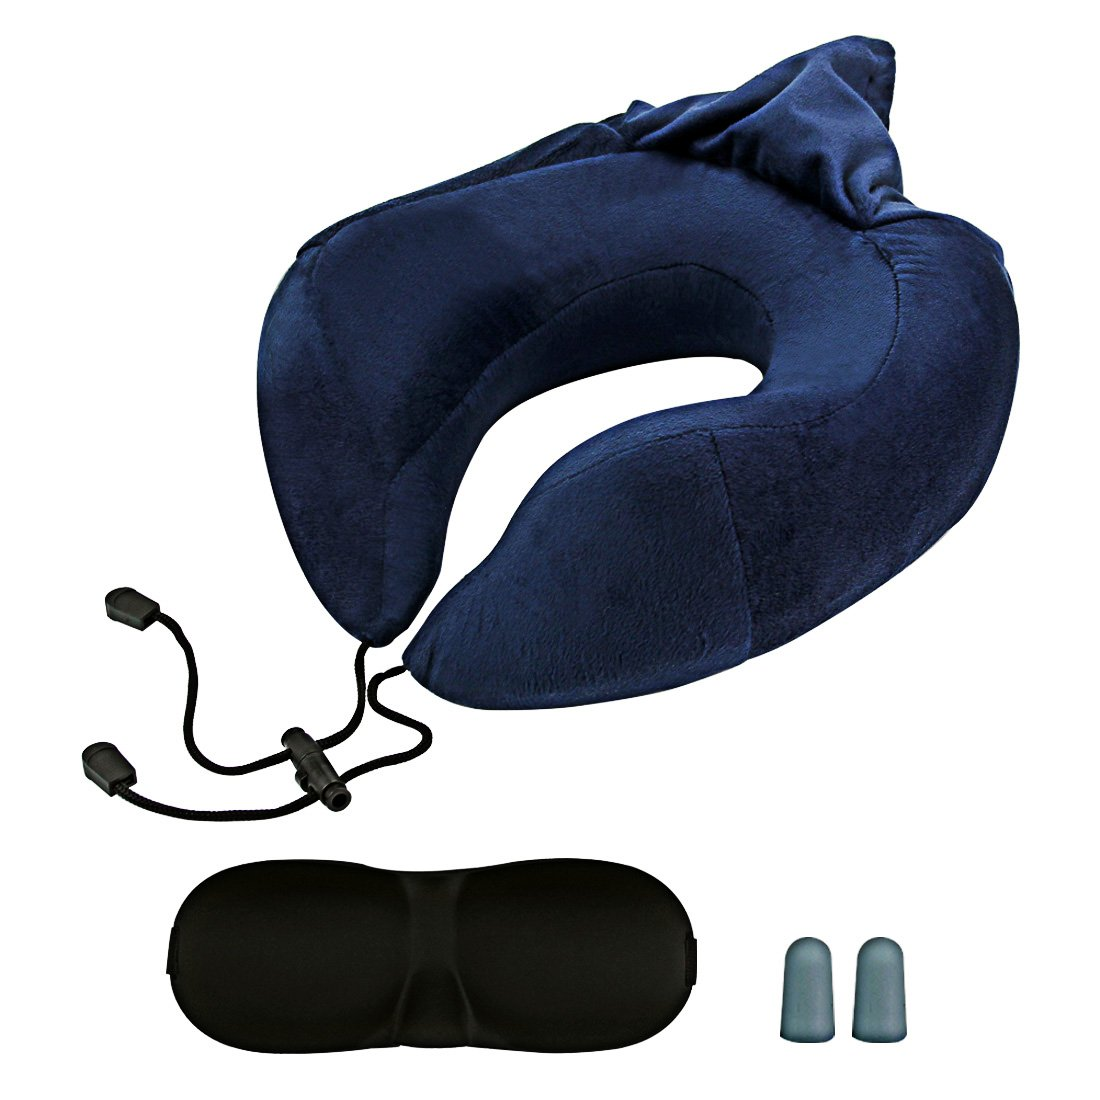 Neck Pillow, Travel Pillow, Memory Foam Neck Support, Memory Foam Luxury Ergonomic Neck Pillow for Chin and Neck Support, Airplane Travel Kit With Ultra Plush Velour Cover, Sleep Mask and Earplugs